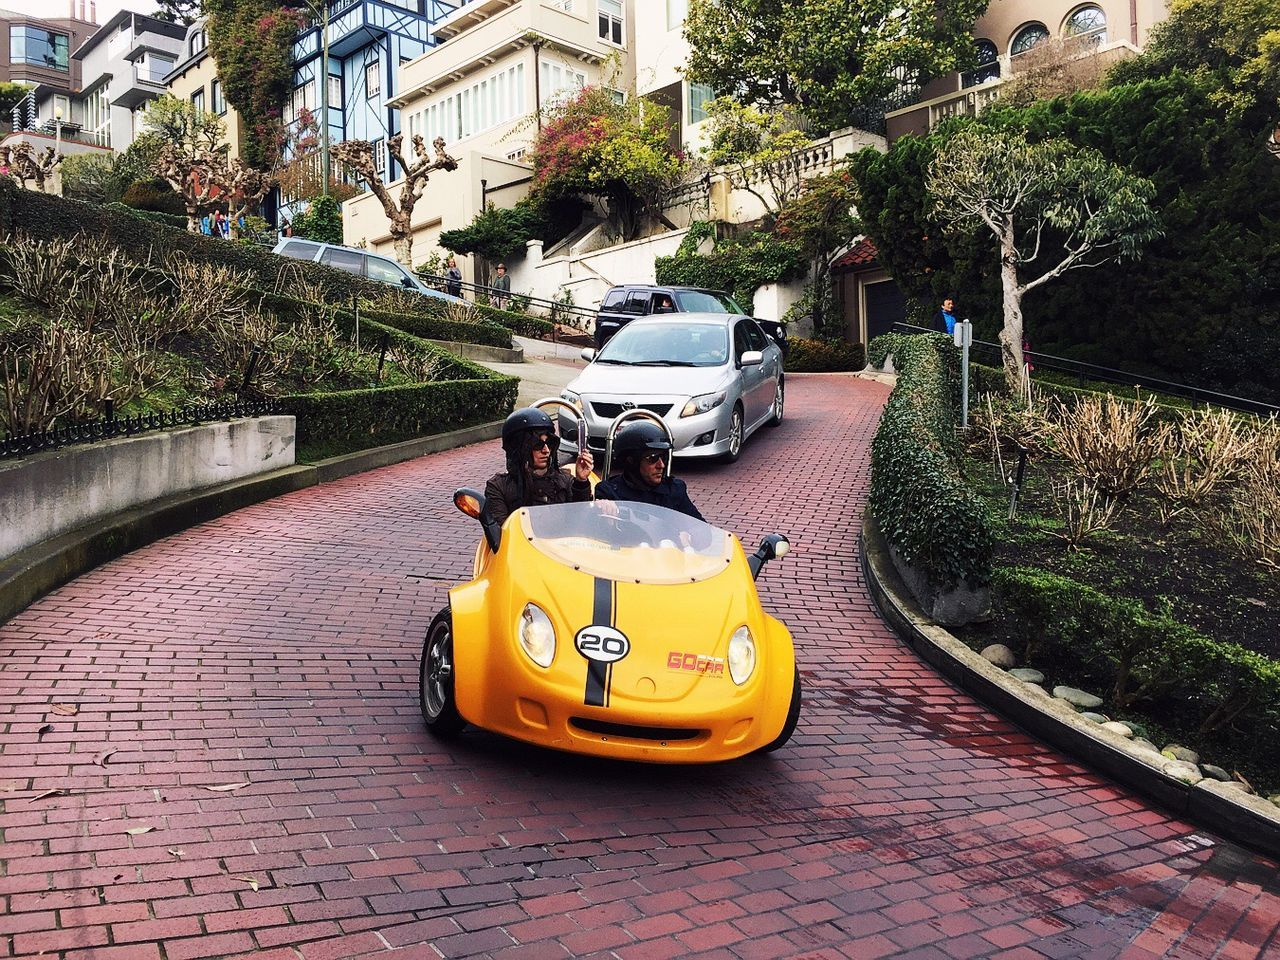 Sanfrancisco Blackandwhite Streetphotography Lifestyles People Transportation City Perspective Ziczac Street Hill Lombard Street Fun Attraction